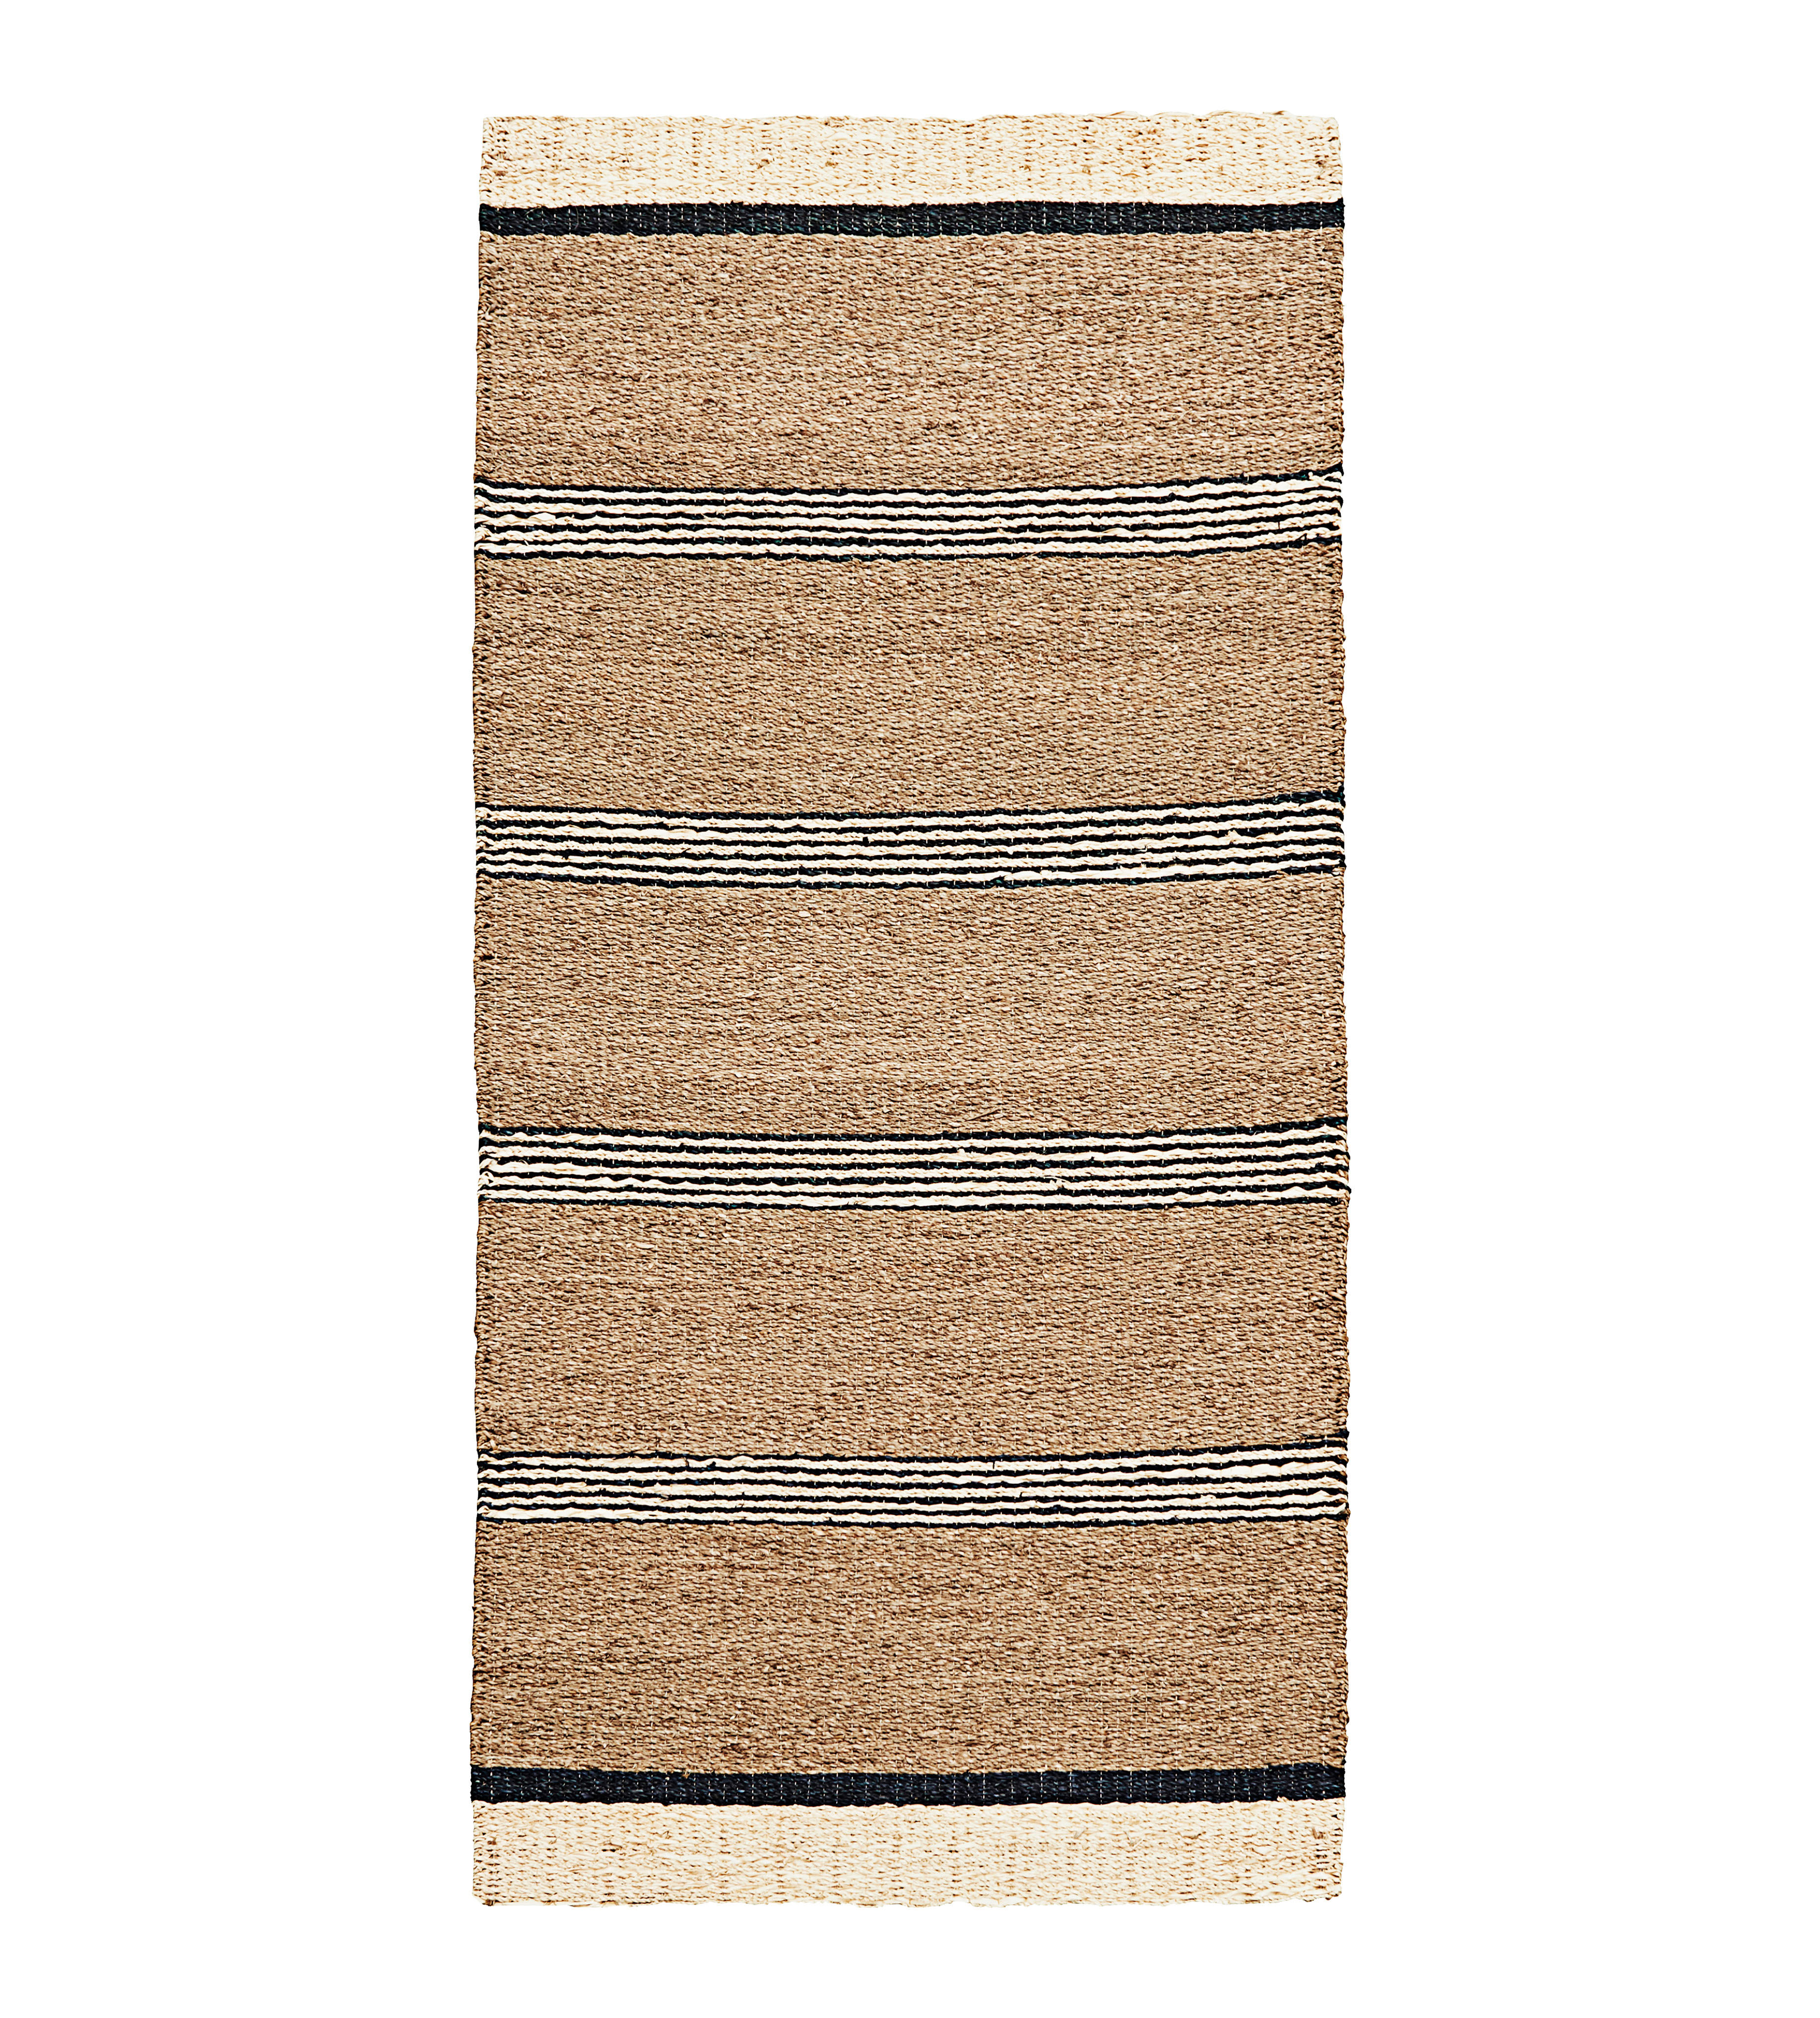 Decoration - Rugs - Beach Rug - / 90 x 200 cm - Seagrass by House Doctor - Natural / Black - Seagrass